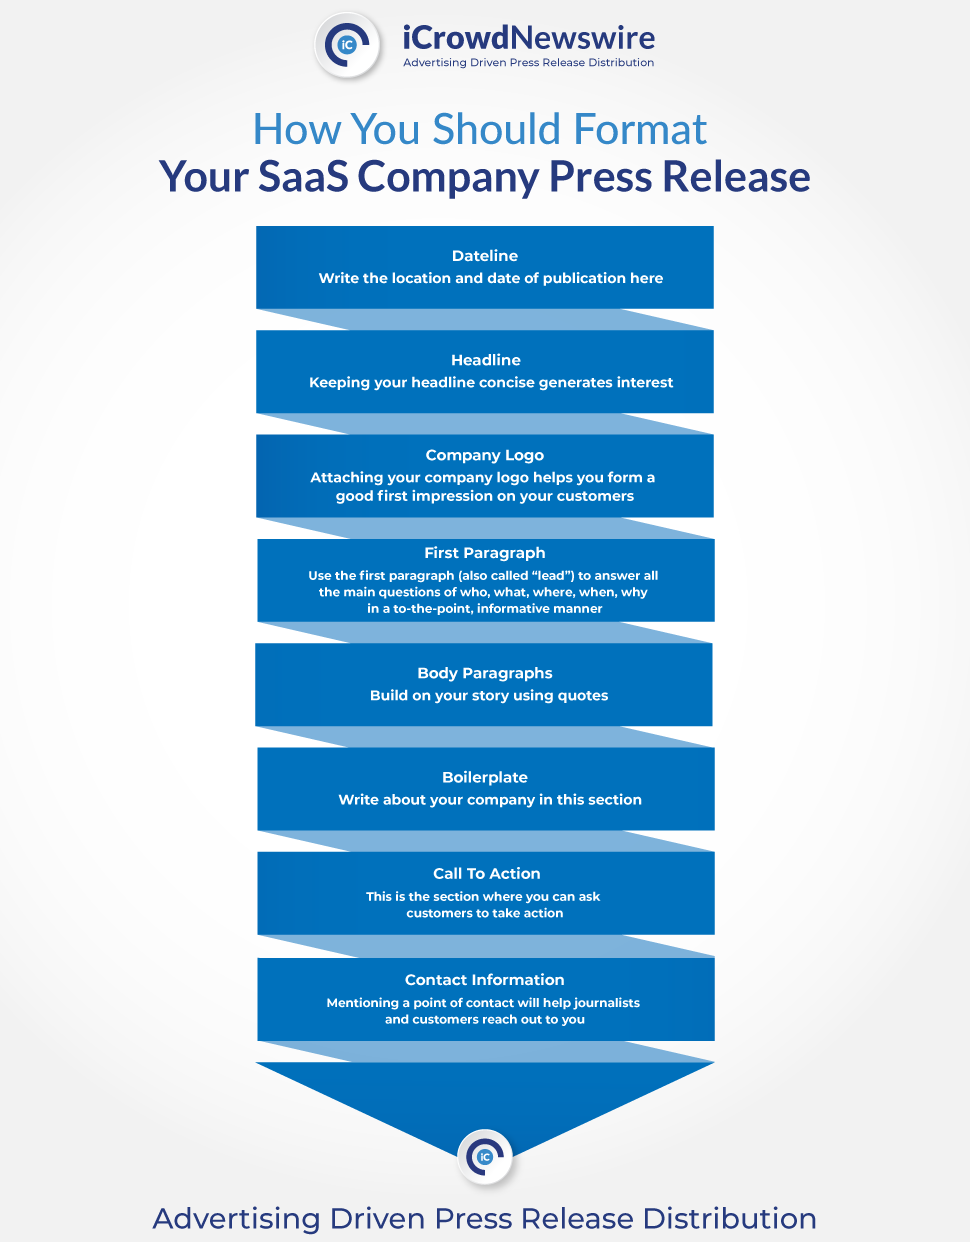 how you should format your SaaS company press release